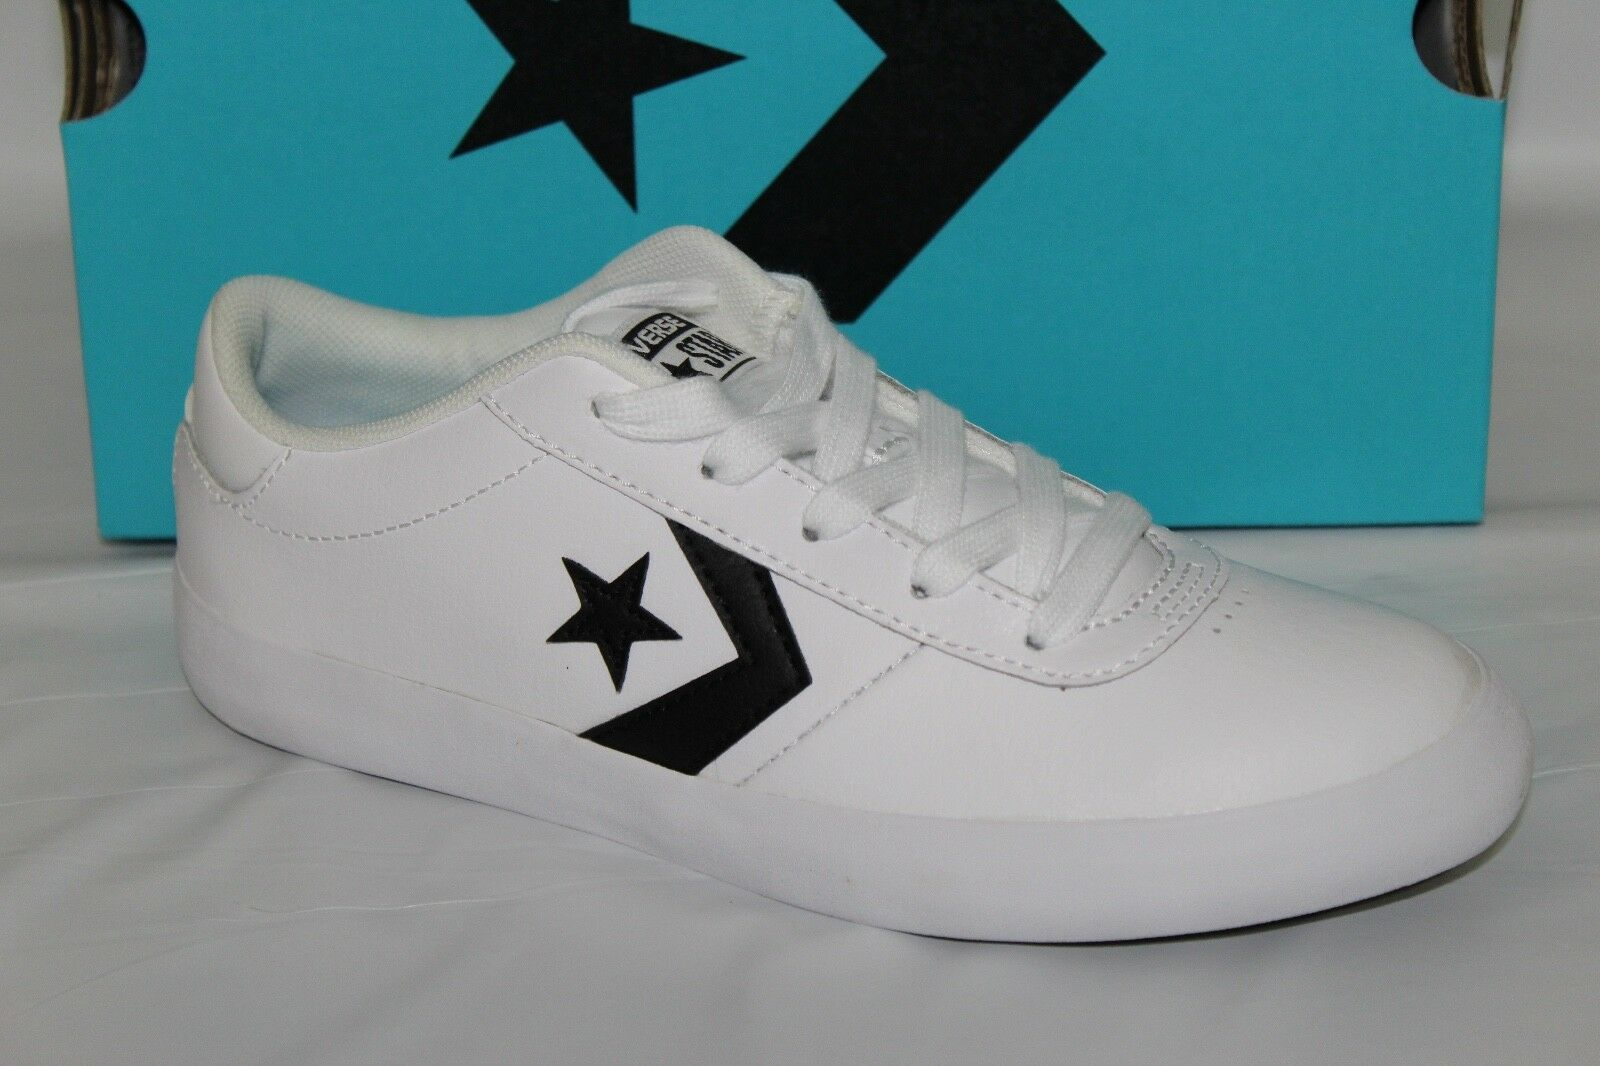 STAR OX YOUTH SHOES, SIZE 3Y, WHITE